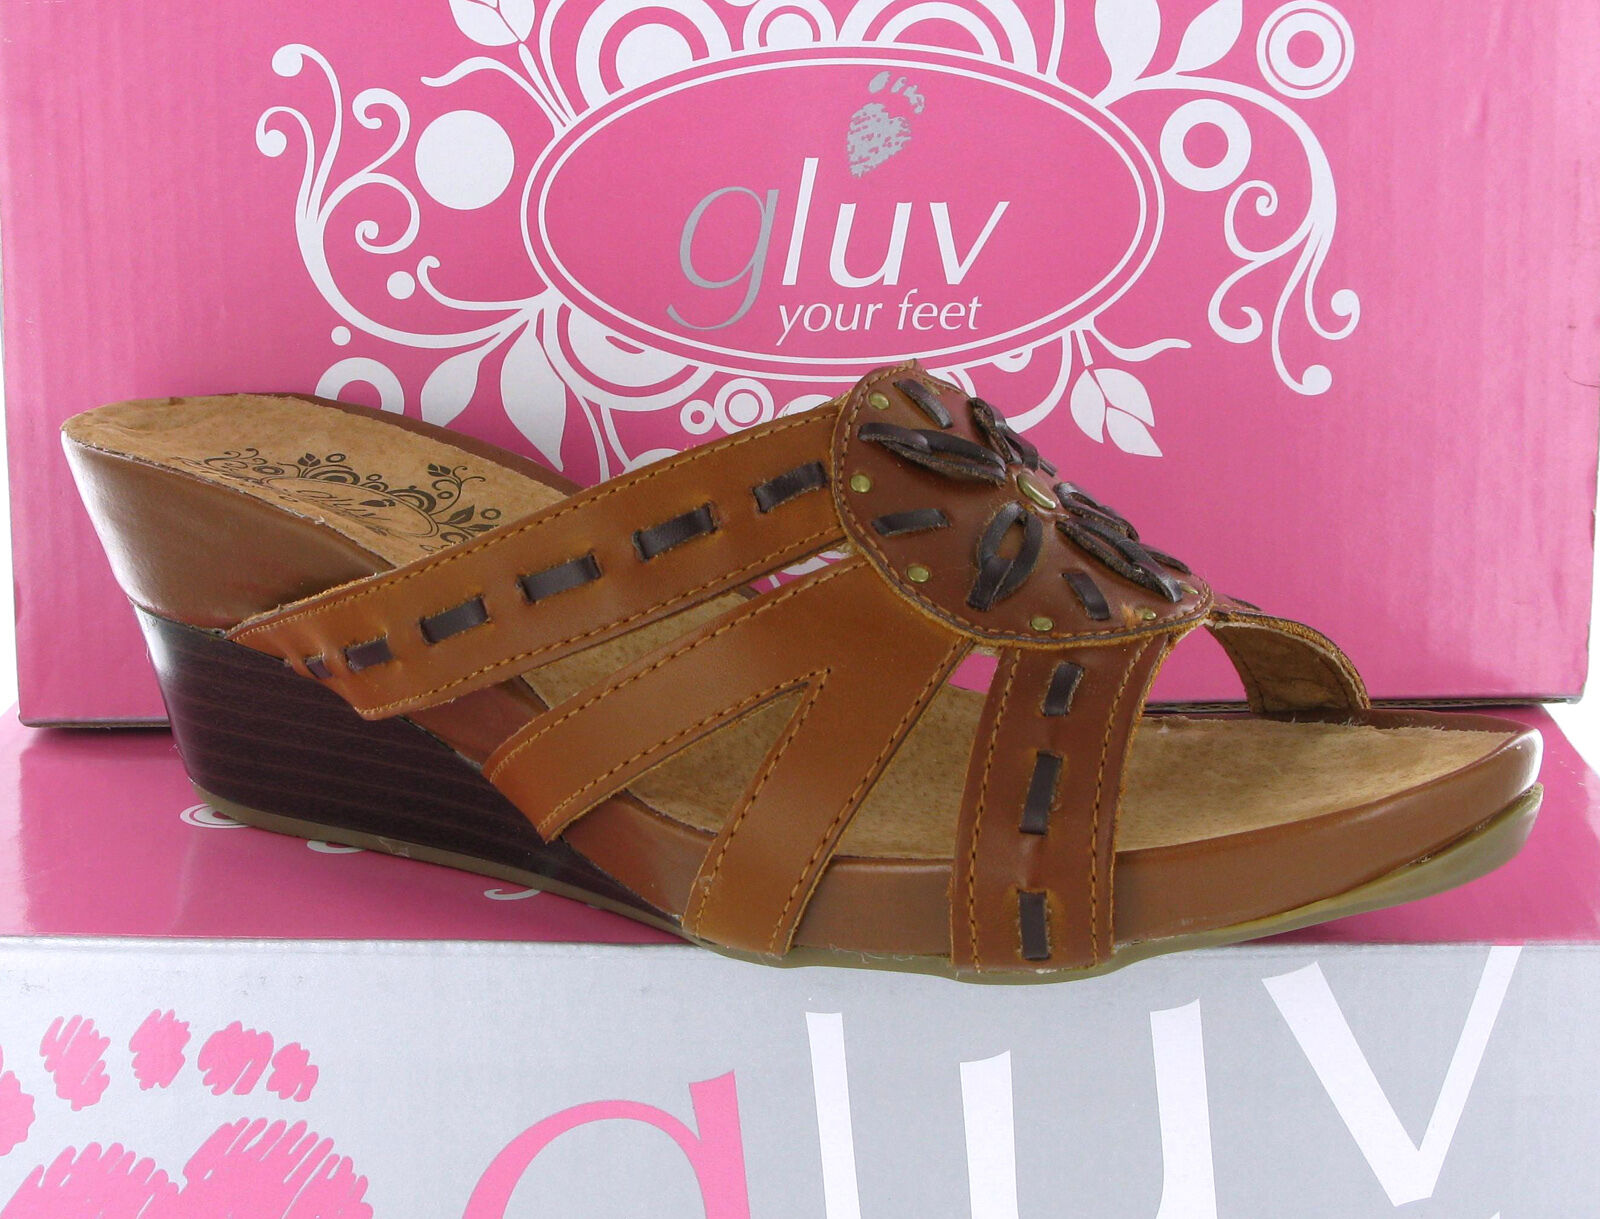 8ba25514b9fb Details about LADIES GLUV LEATHER SANDALS TAN WOMENS SLIP ON COMFORT WEDGE  SHOES UK 6 EU 39